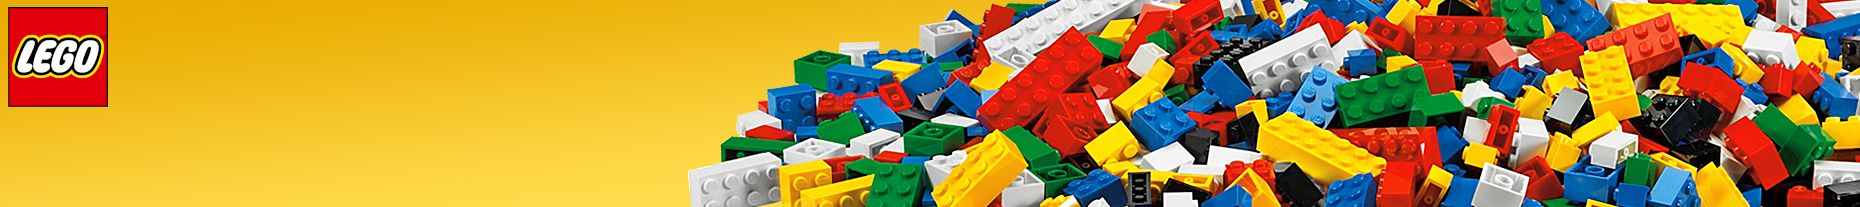 LEGO homepage - Toys4you.cz